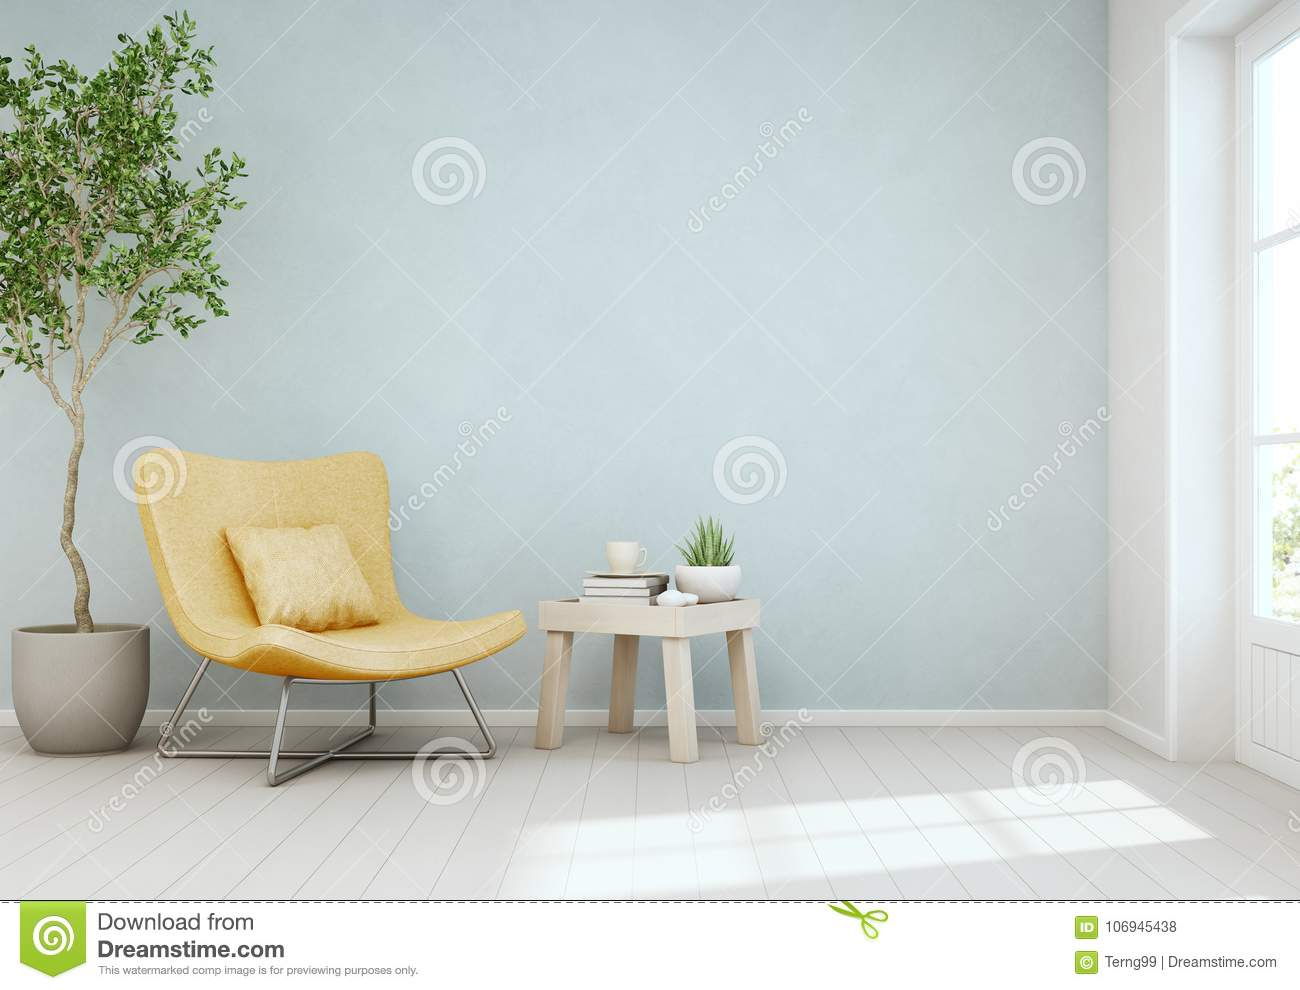 Indoor Plant And Coffee Table On Wooden Floor With Empty Blue ... on indoor tobacco plant, indoor bamboo plant care, indoor fig plant, indoor oak plant, indoor white plant, indoor lime tree, indoor avacado plant, indoor rubber plant, indoor water plant, indoor plants that clean the air, indoor lemon plant, indoor lilac plant, indoor coconut plant, indoor grass plants, indoor garlic plant, ideas for front of house plant, indoor citronella plant, indoor papaya plant, indoor wheat plant,